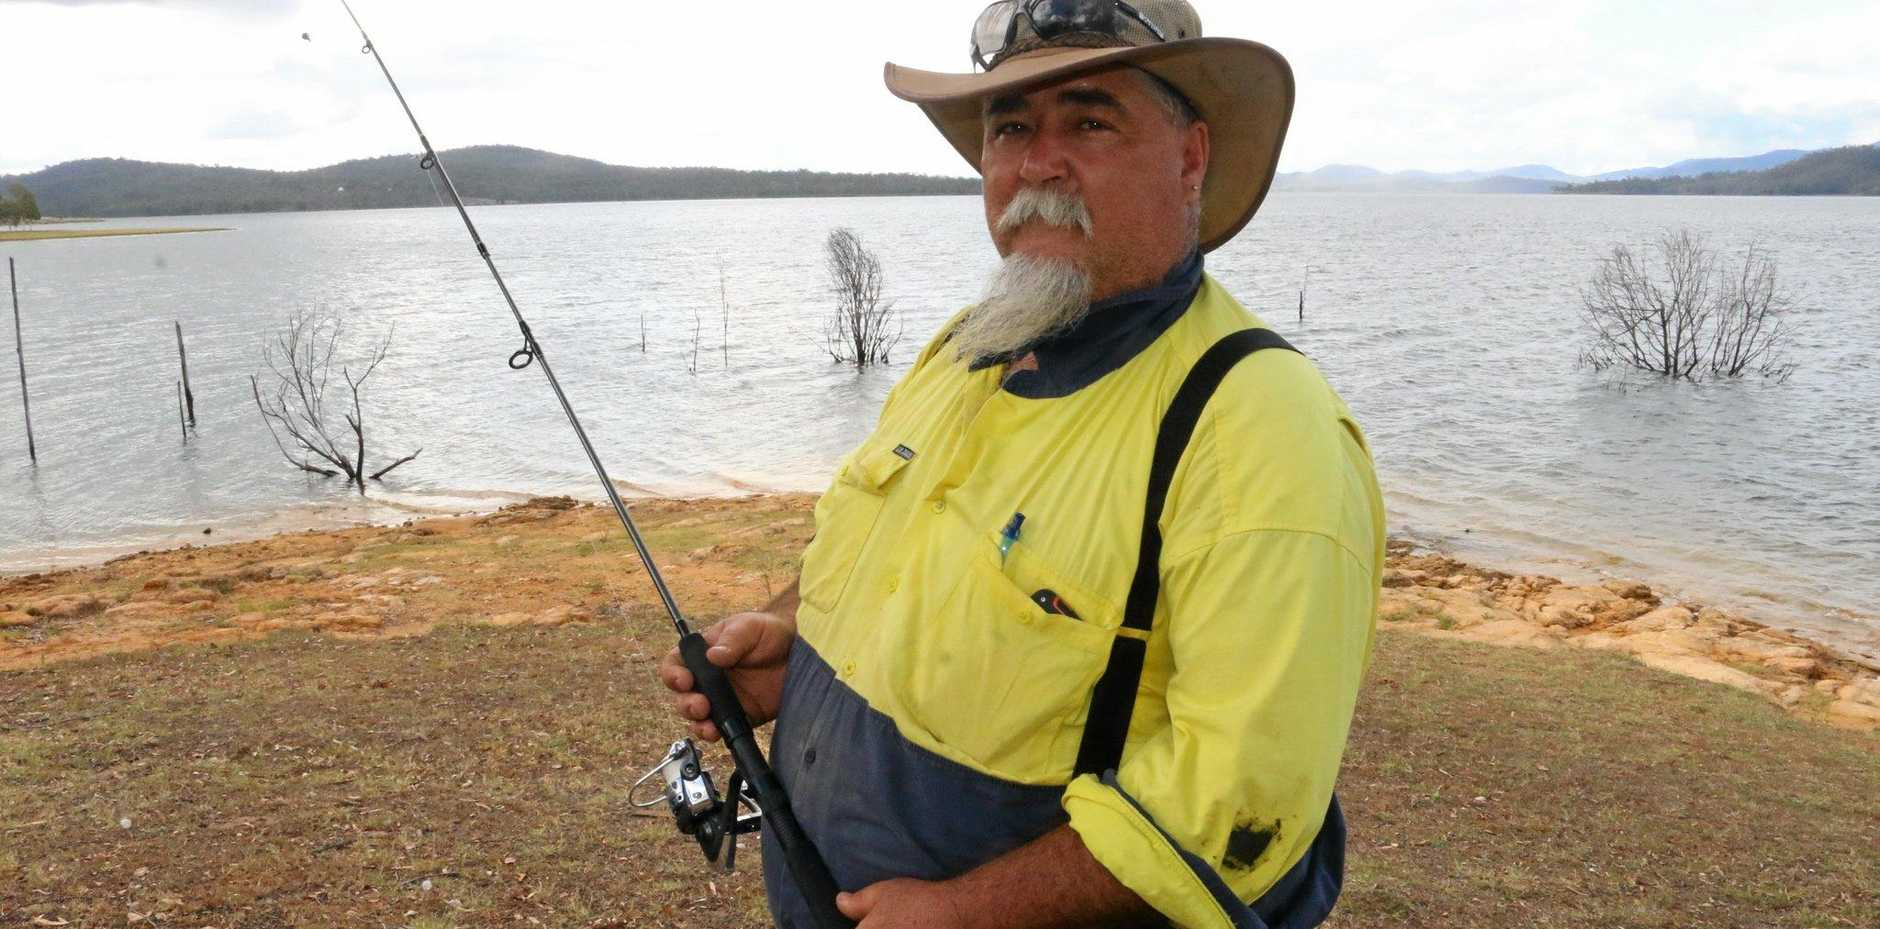 LIFT LIMITS: Daryl Beckett is pushing for speed restrictions and public access points to be improved on Wivenhoe.